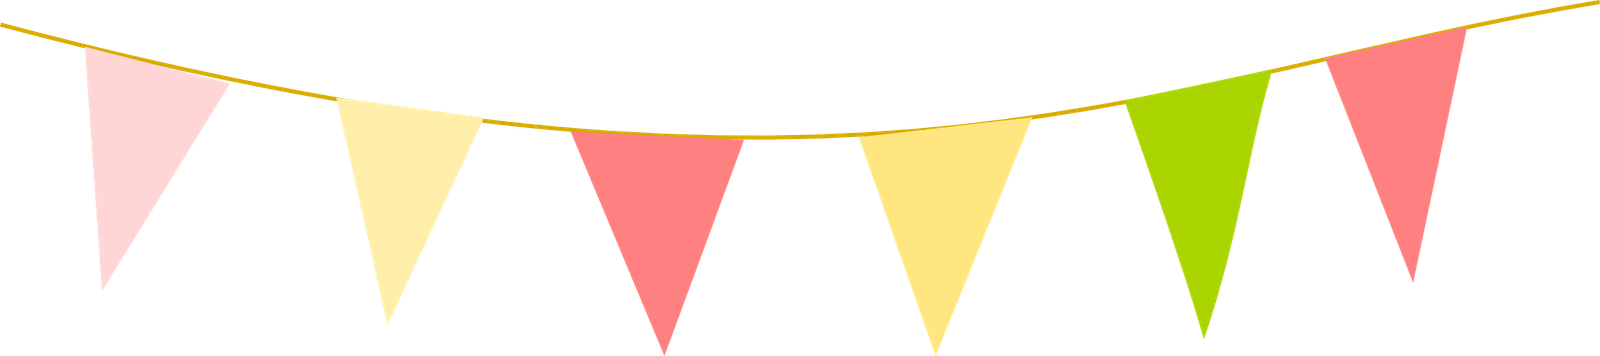 Triangle flag banner png. Collection of vintage